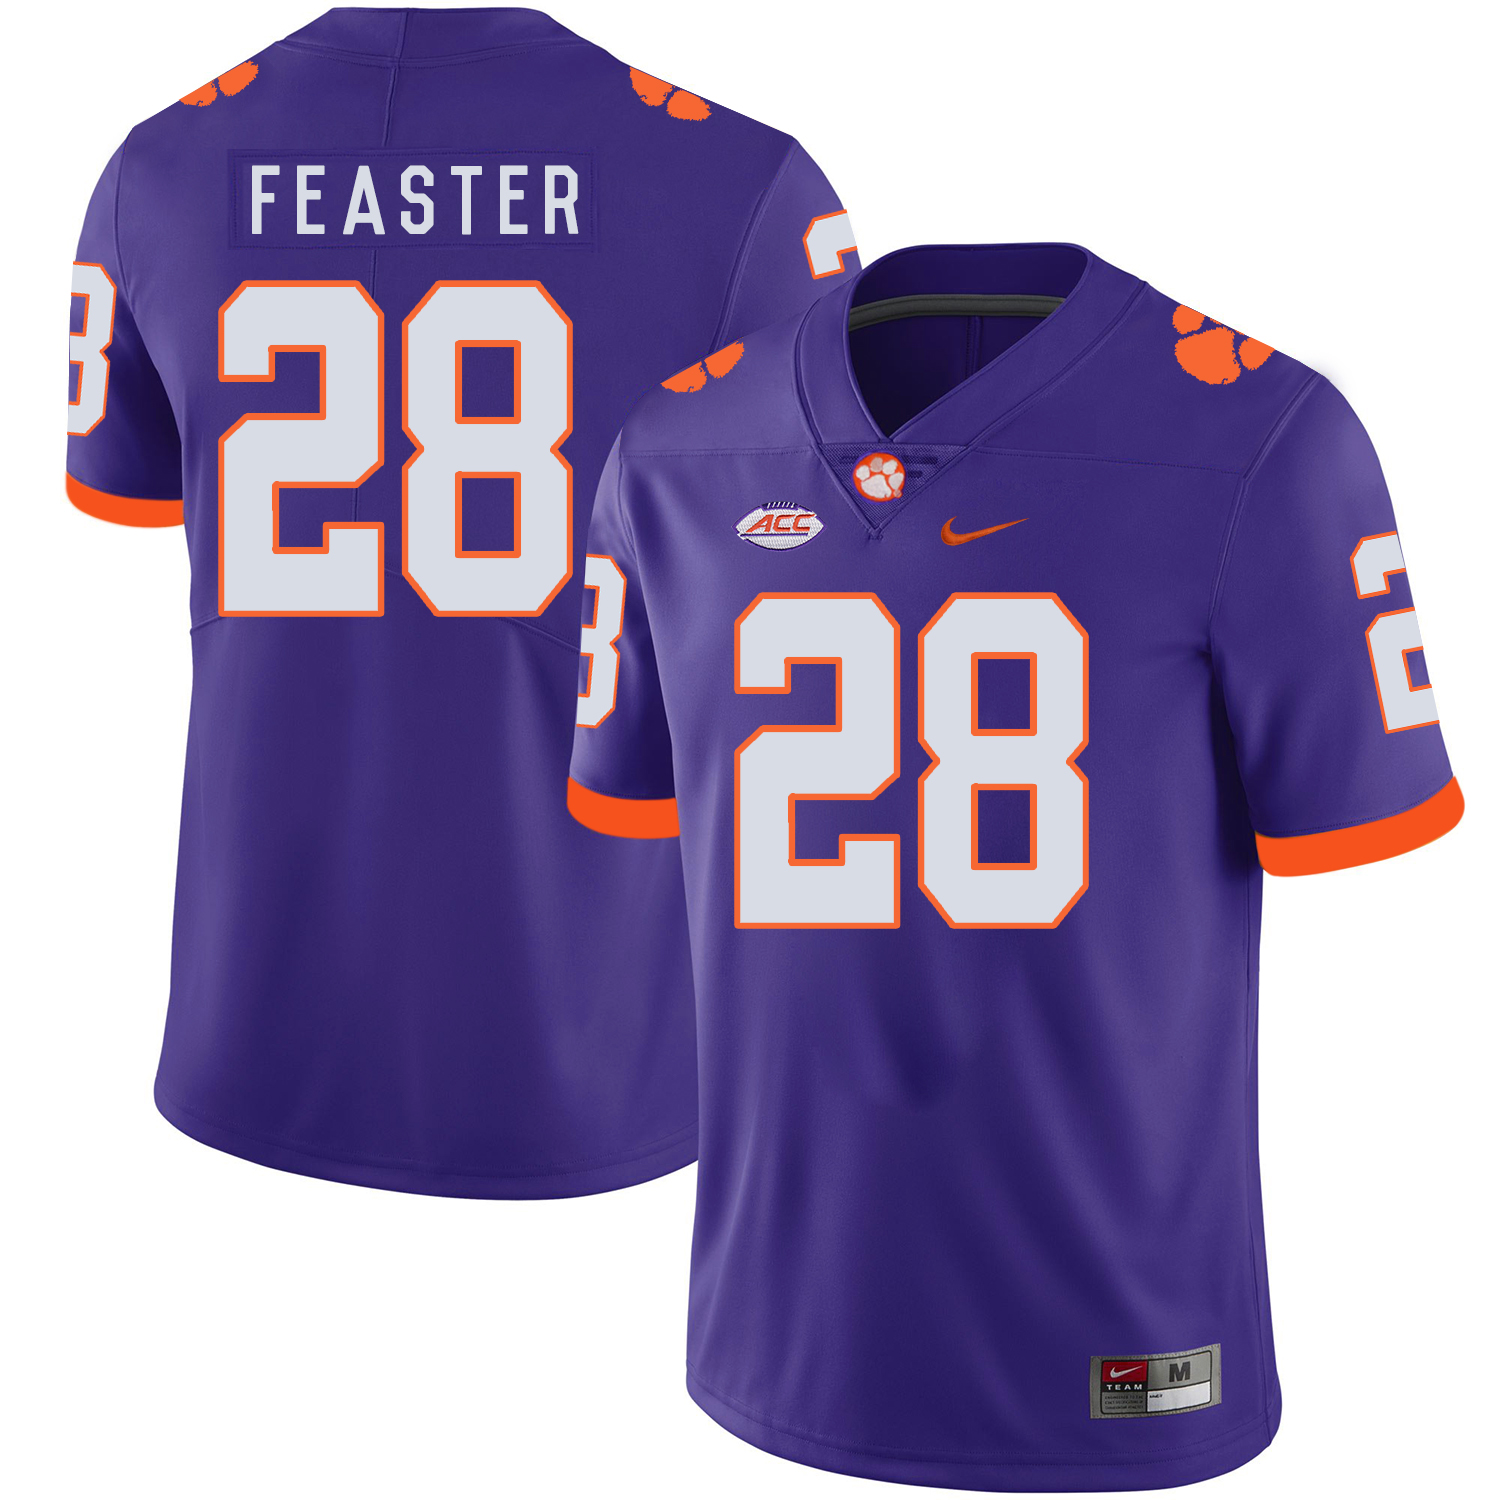 Clemson Tigers 28 Tavien Feaster Purple Nike College Football Jersey